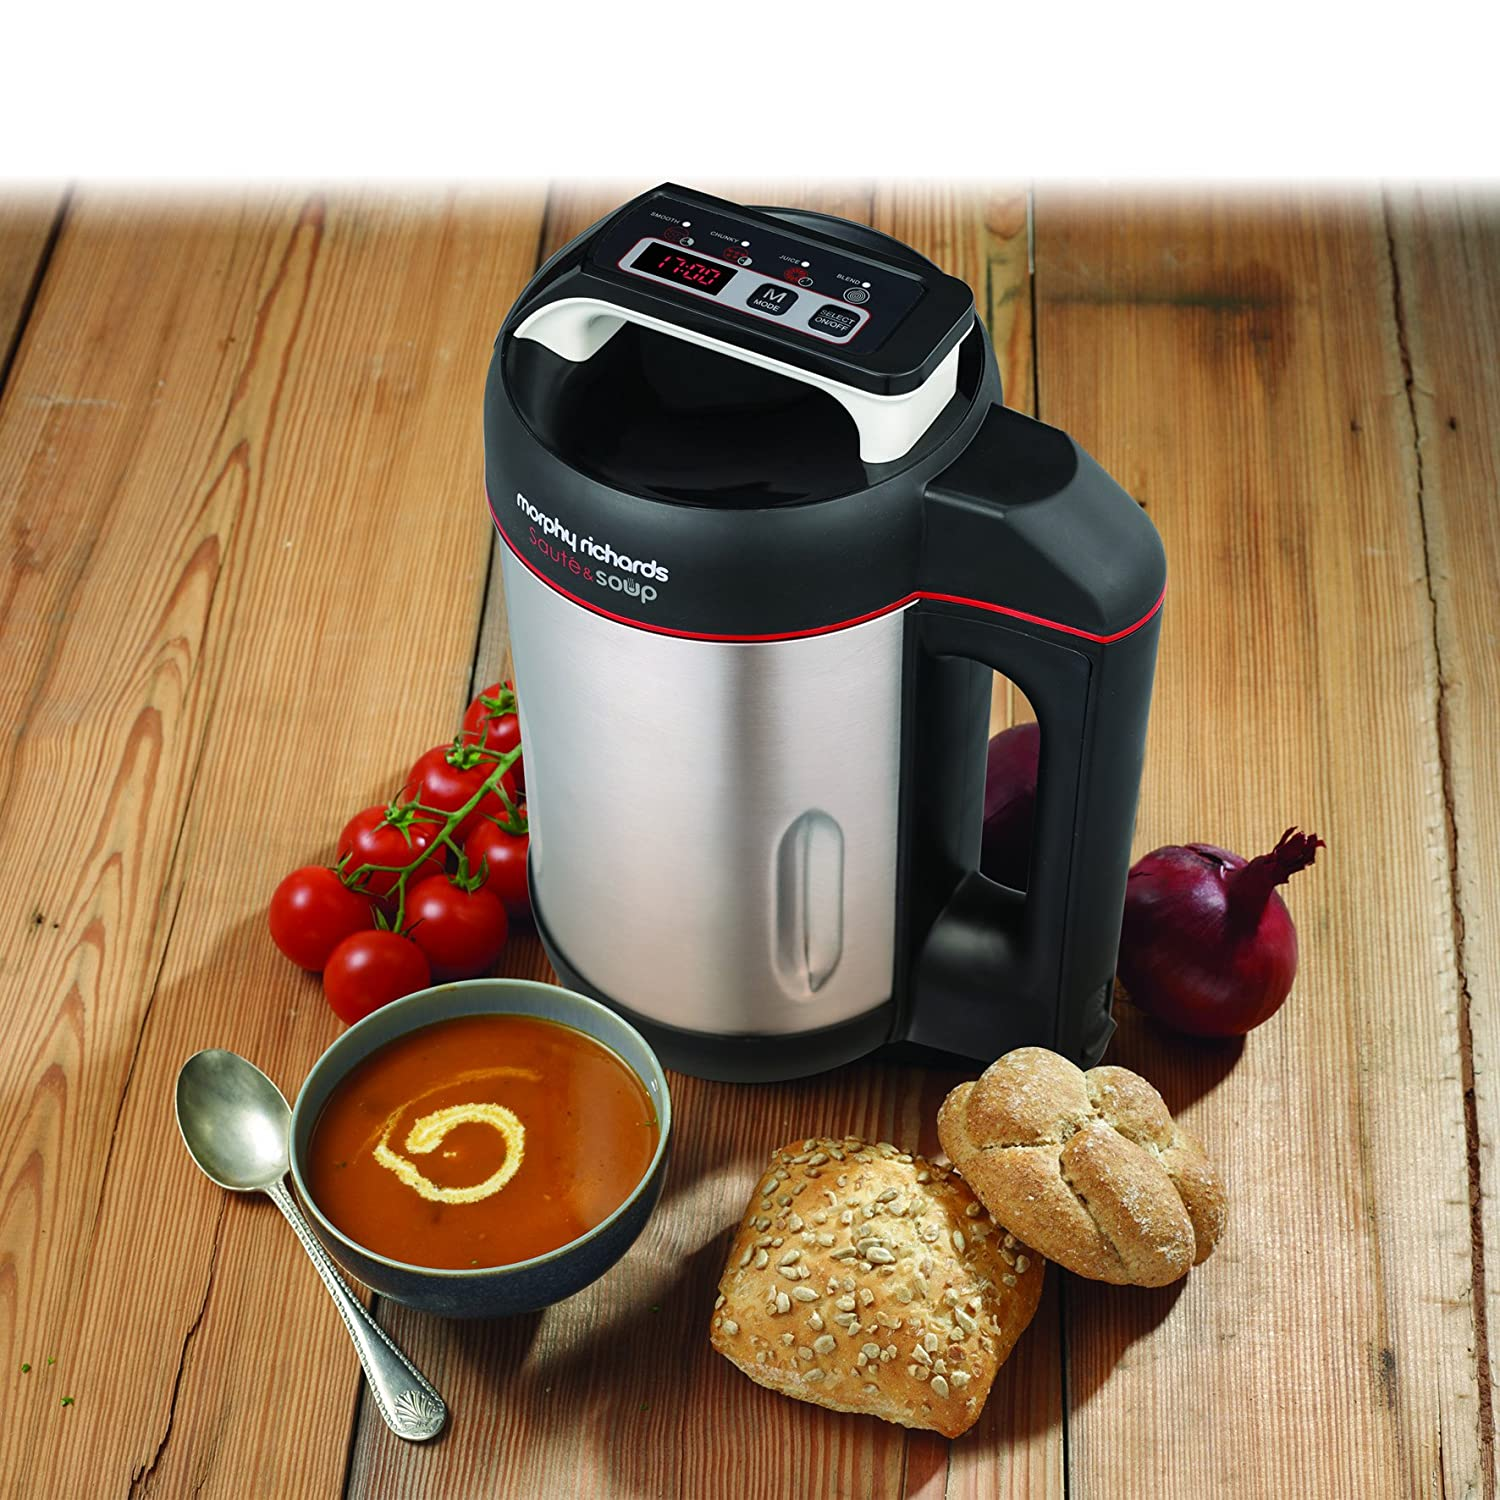 This Morphy Richards soup maker is an excellent choice at under £70 and comes with a saute function.